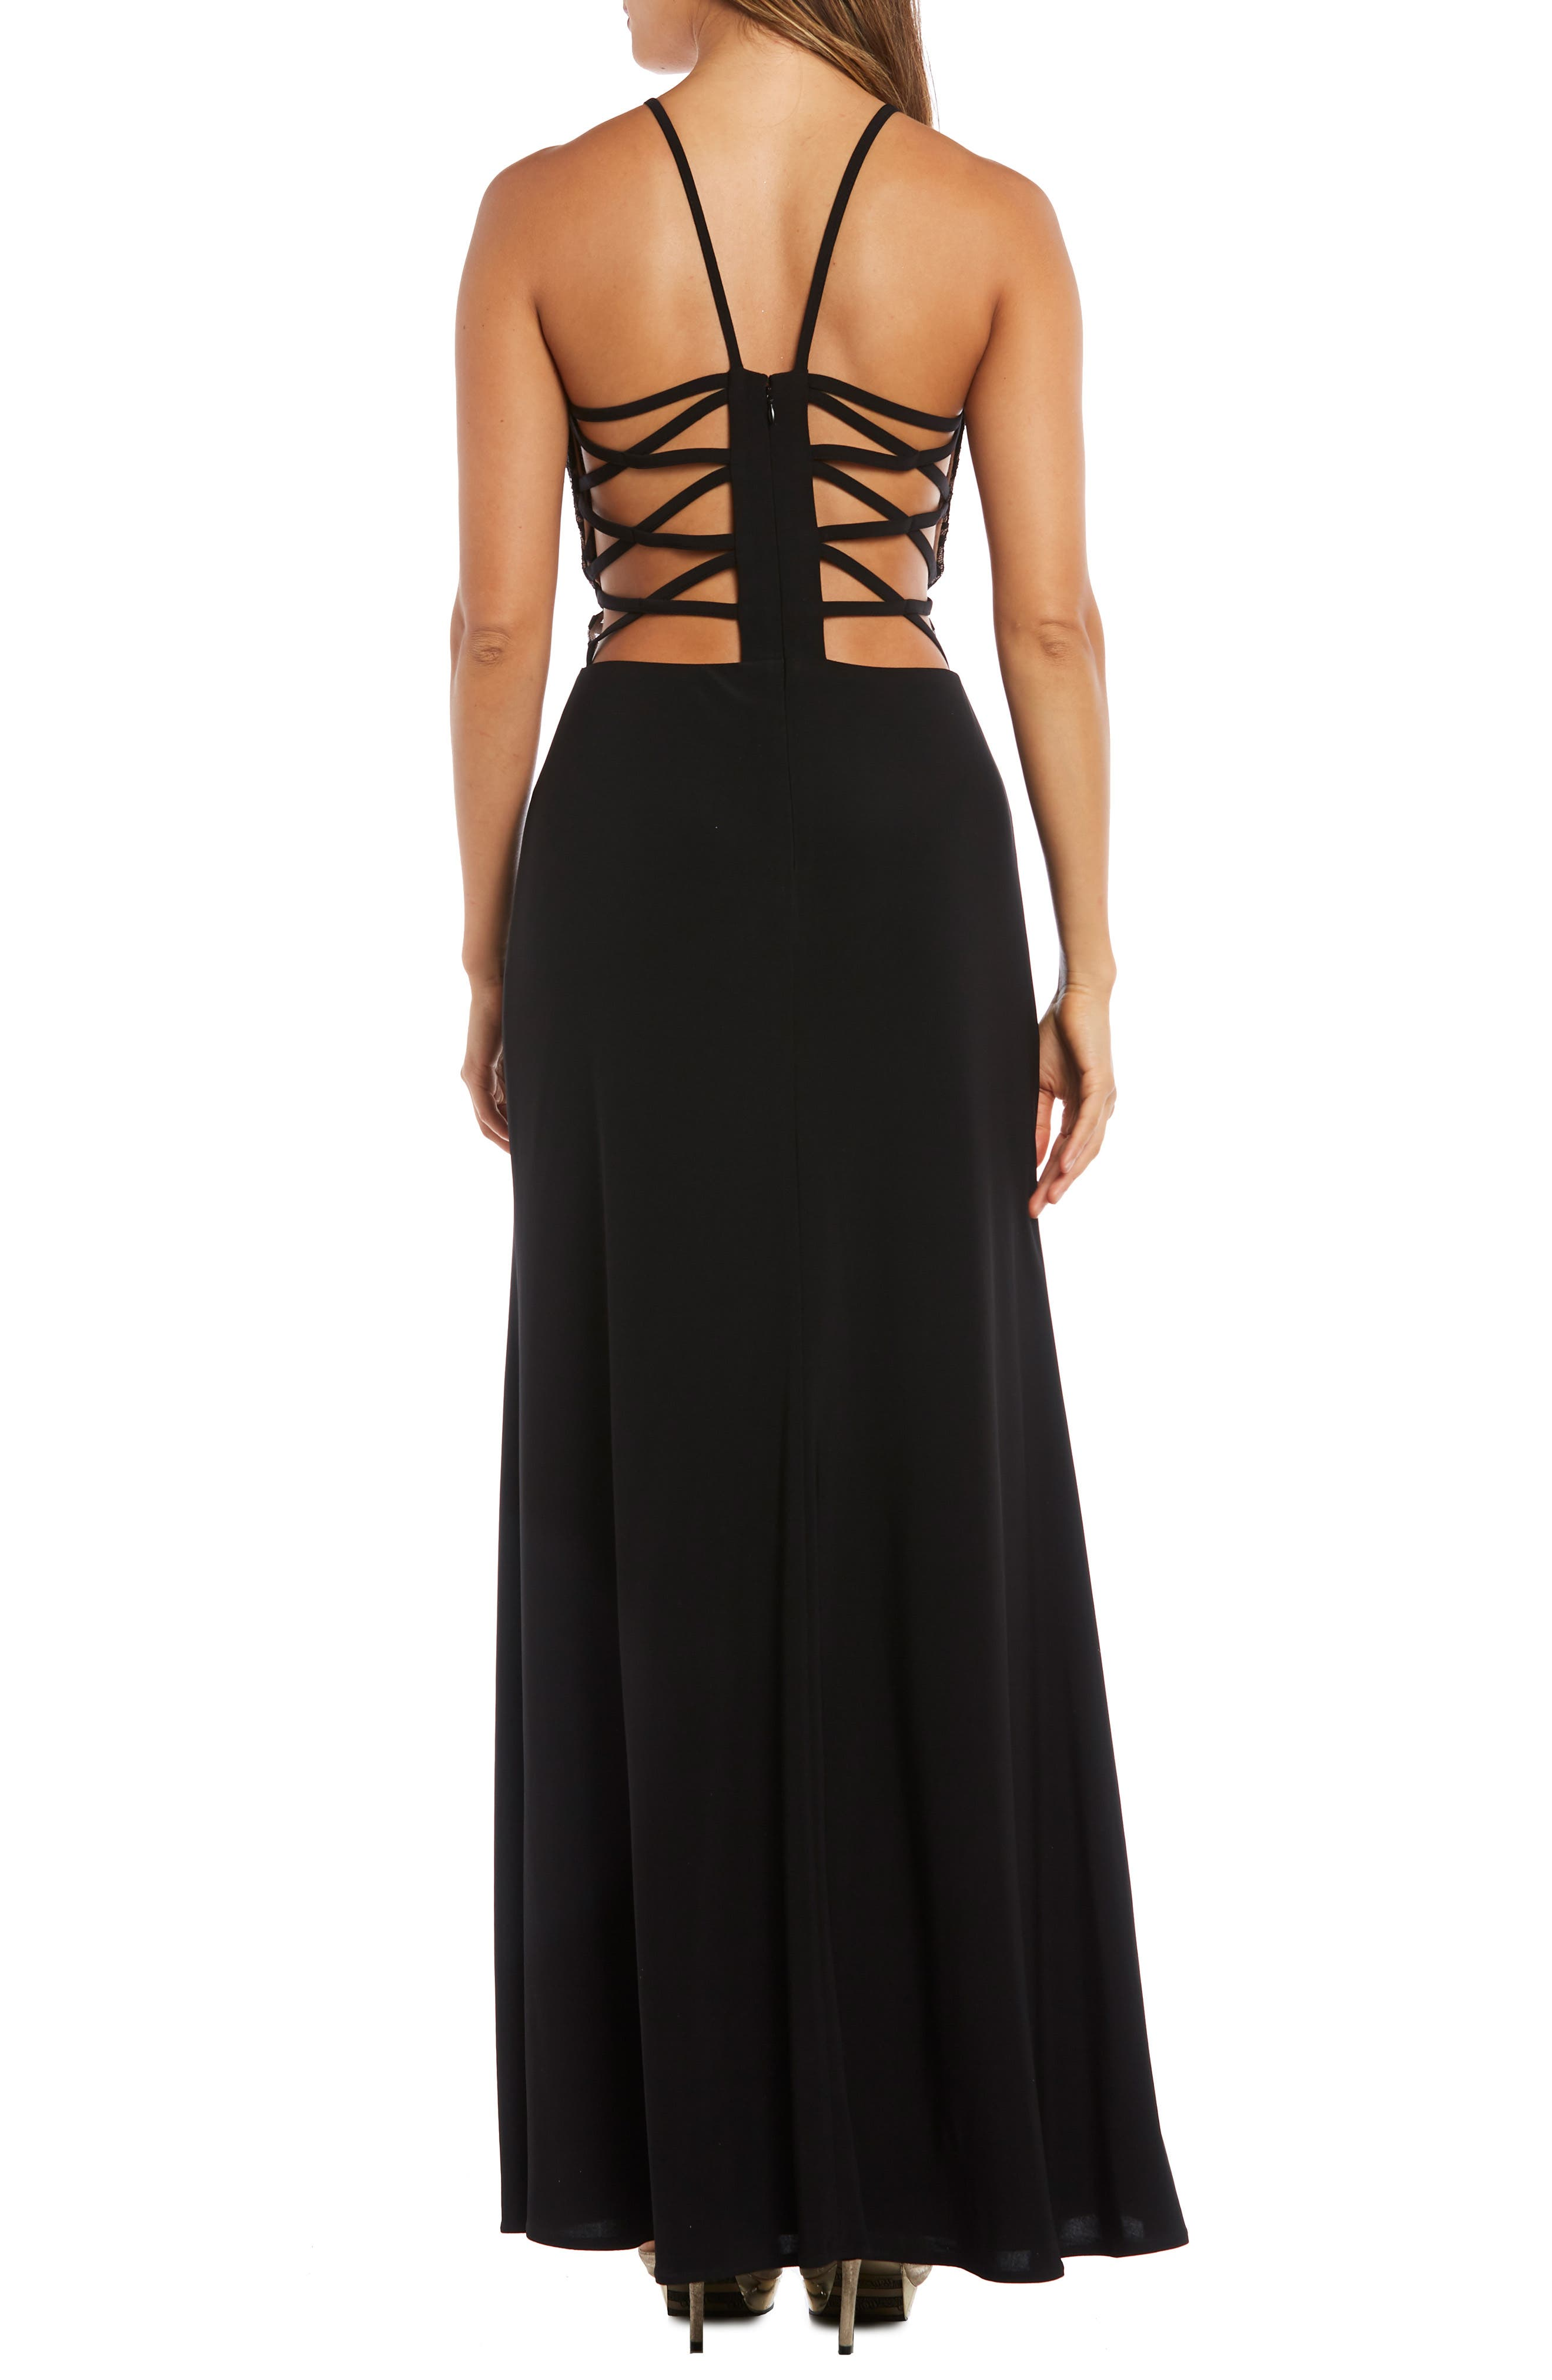 MORGAN & CO.,                             Strappy Lace Bodice Gown,                             Alternate thumbnail 2, color,                             BLACK/ NUDE